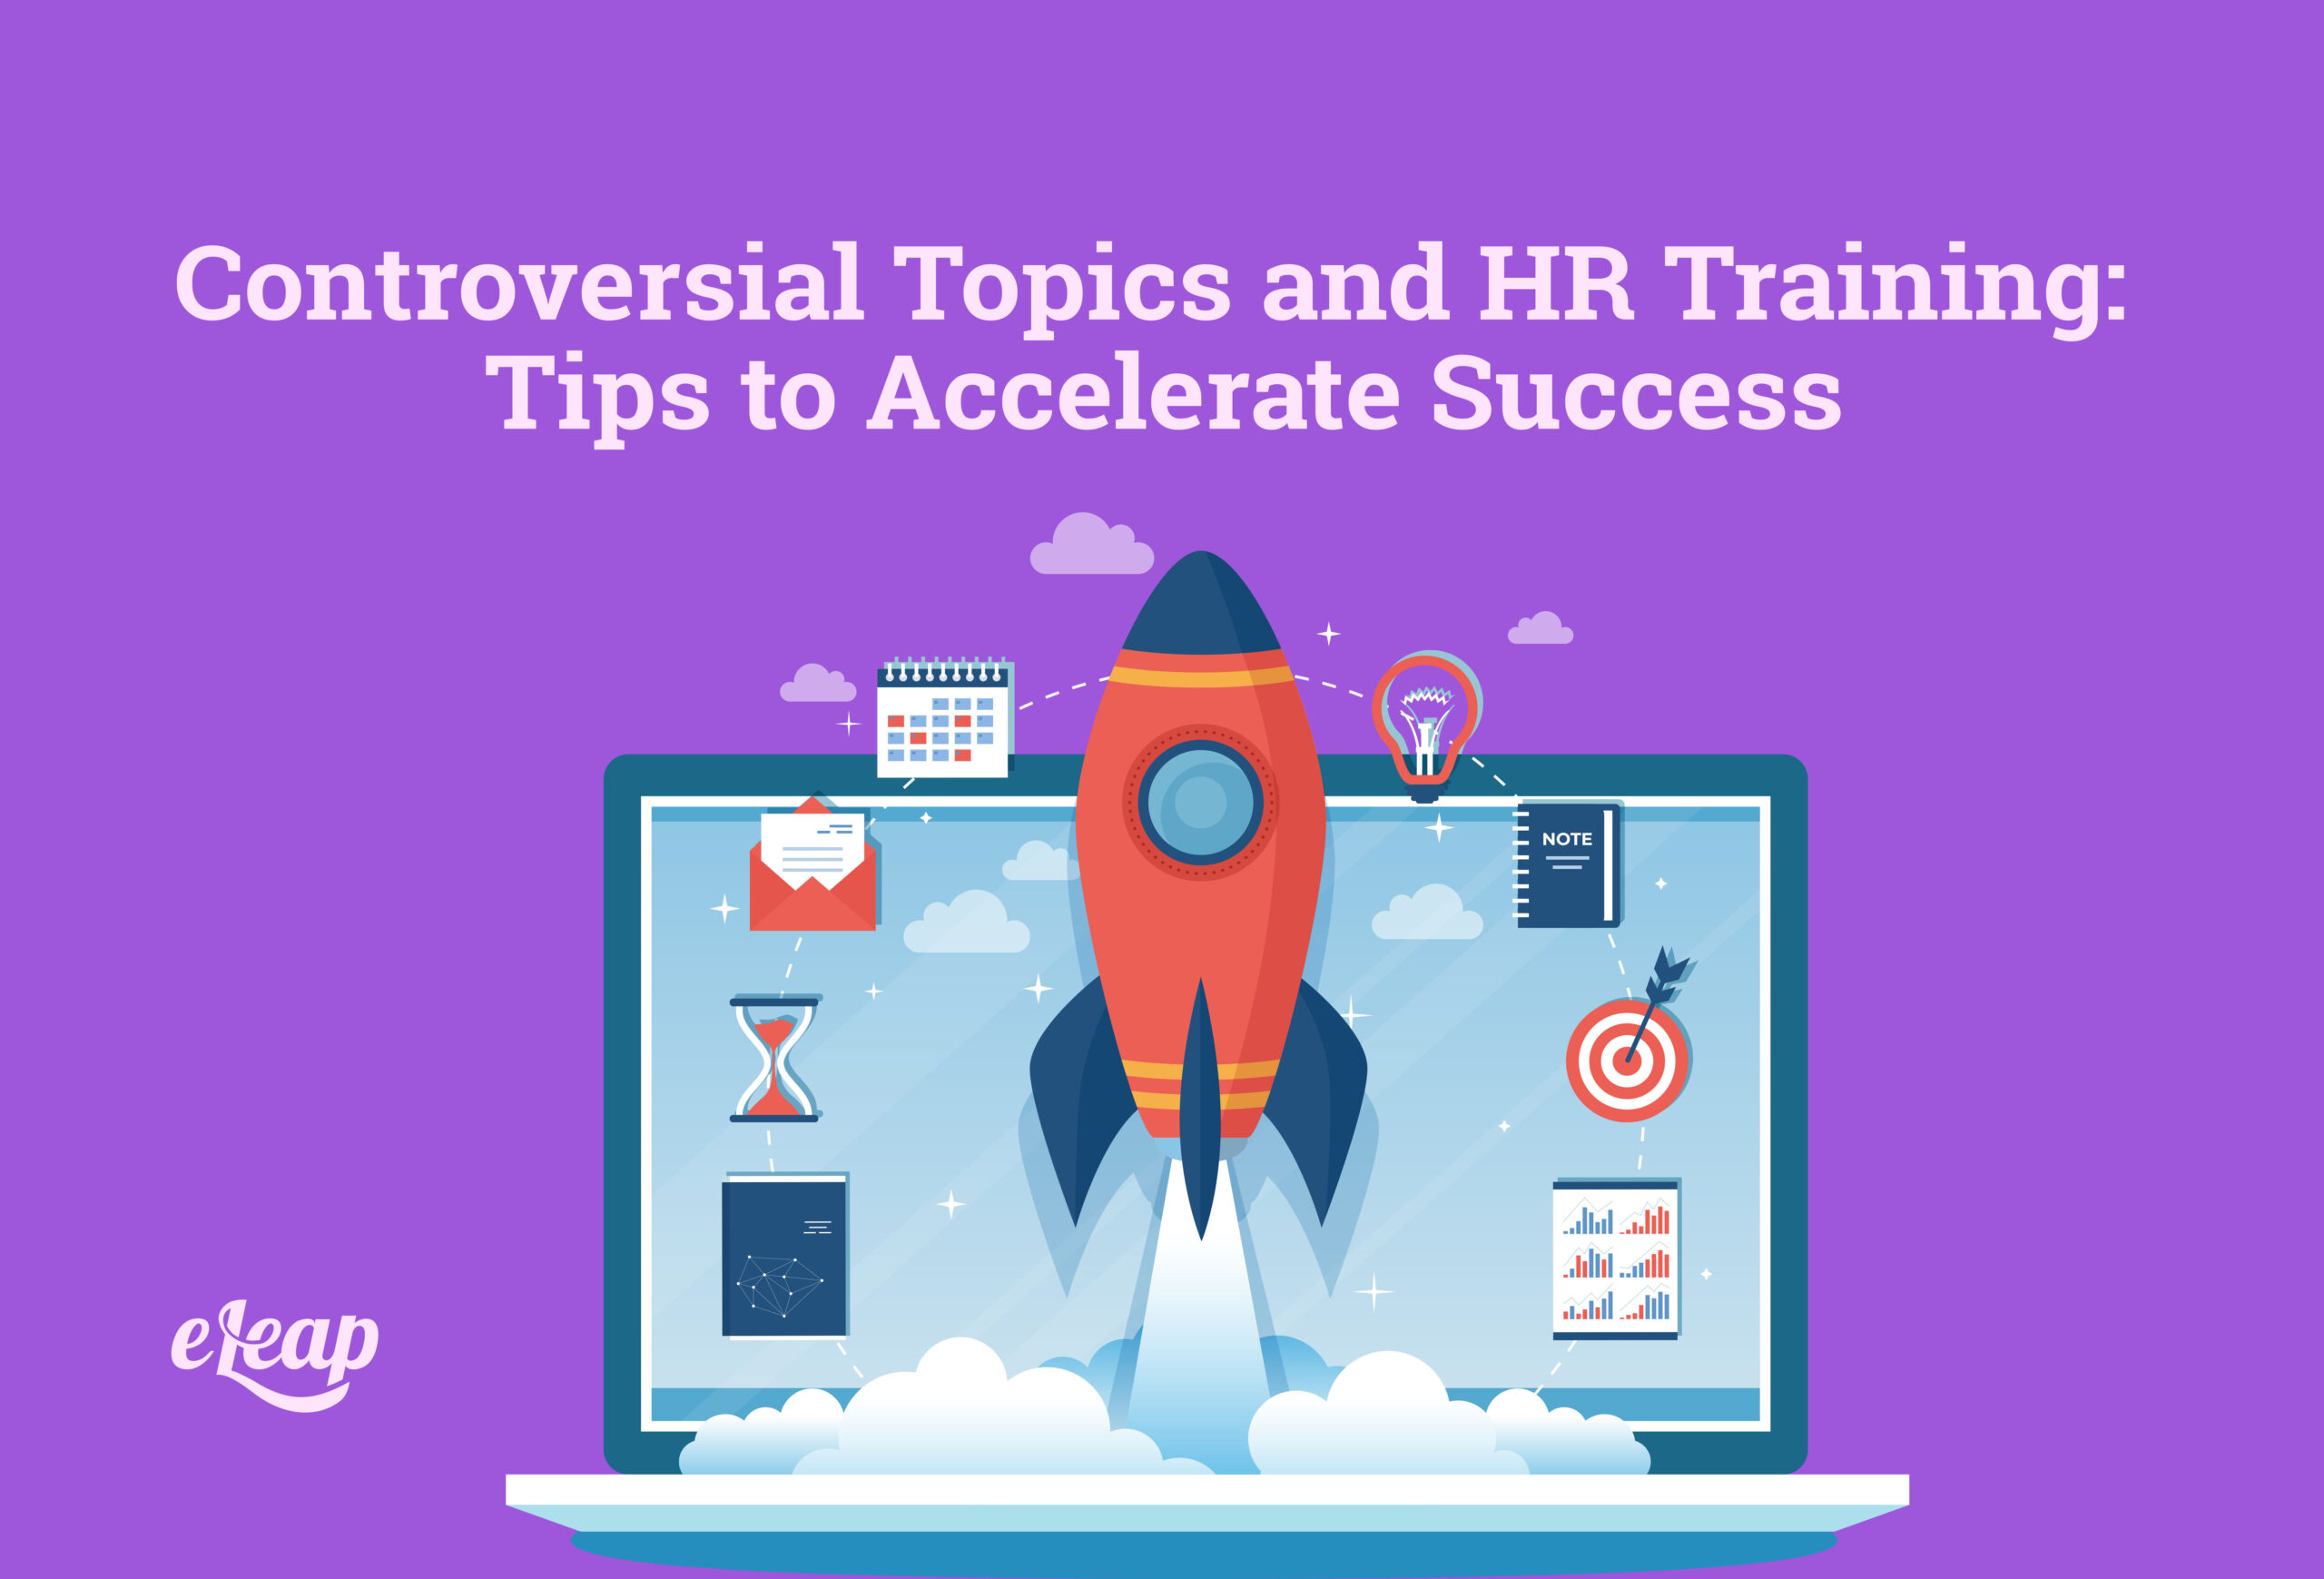 Controversial Topics and HR Training: Tips to Accelerate Success